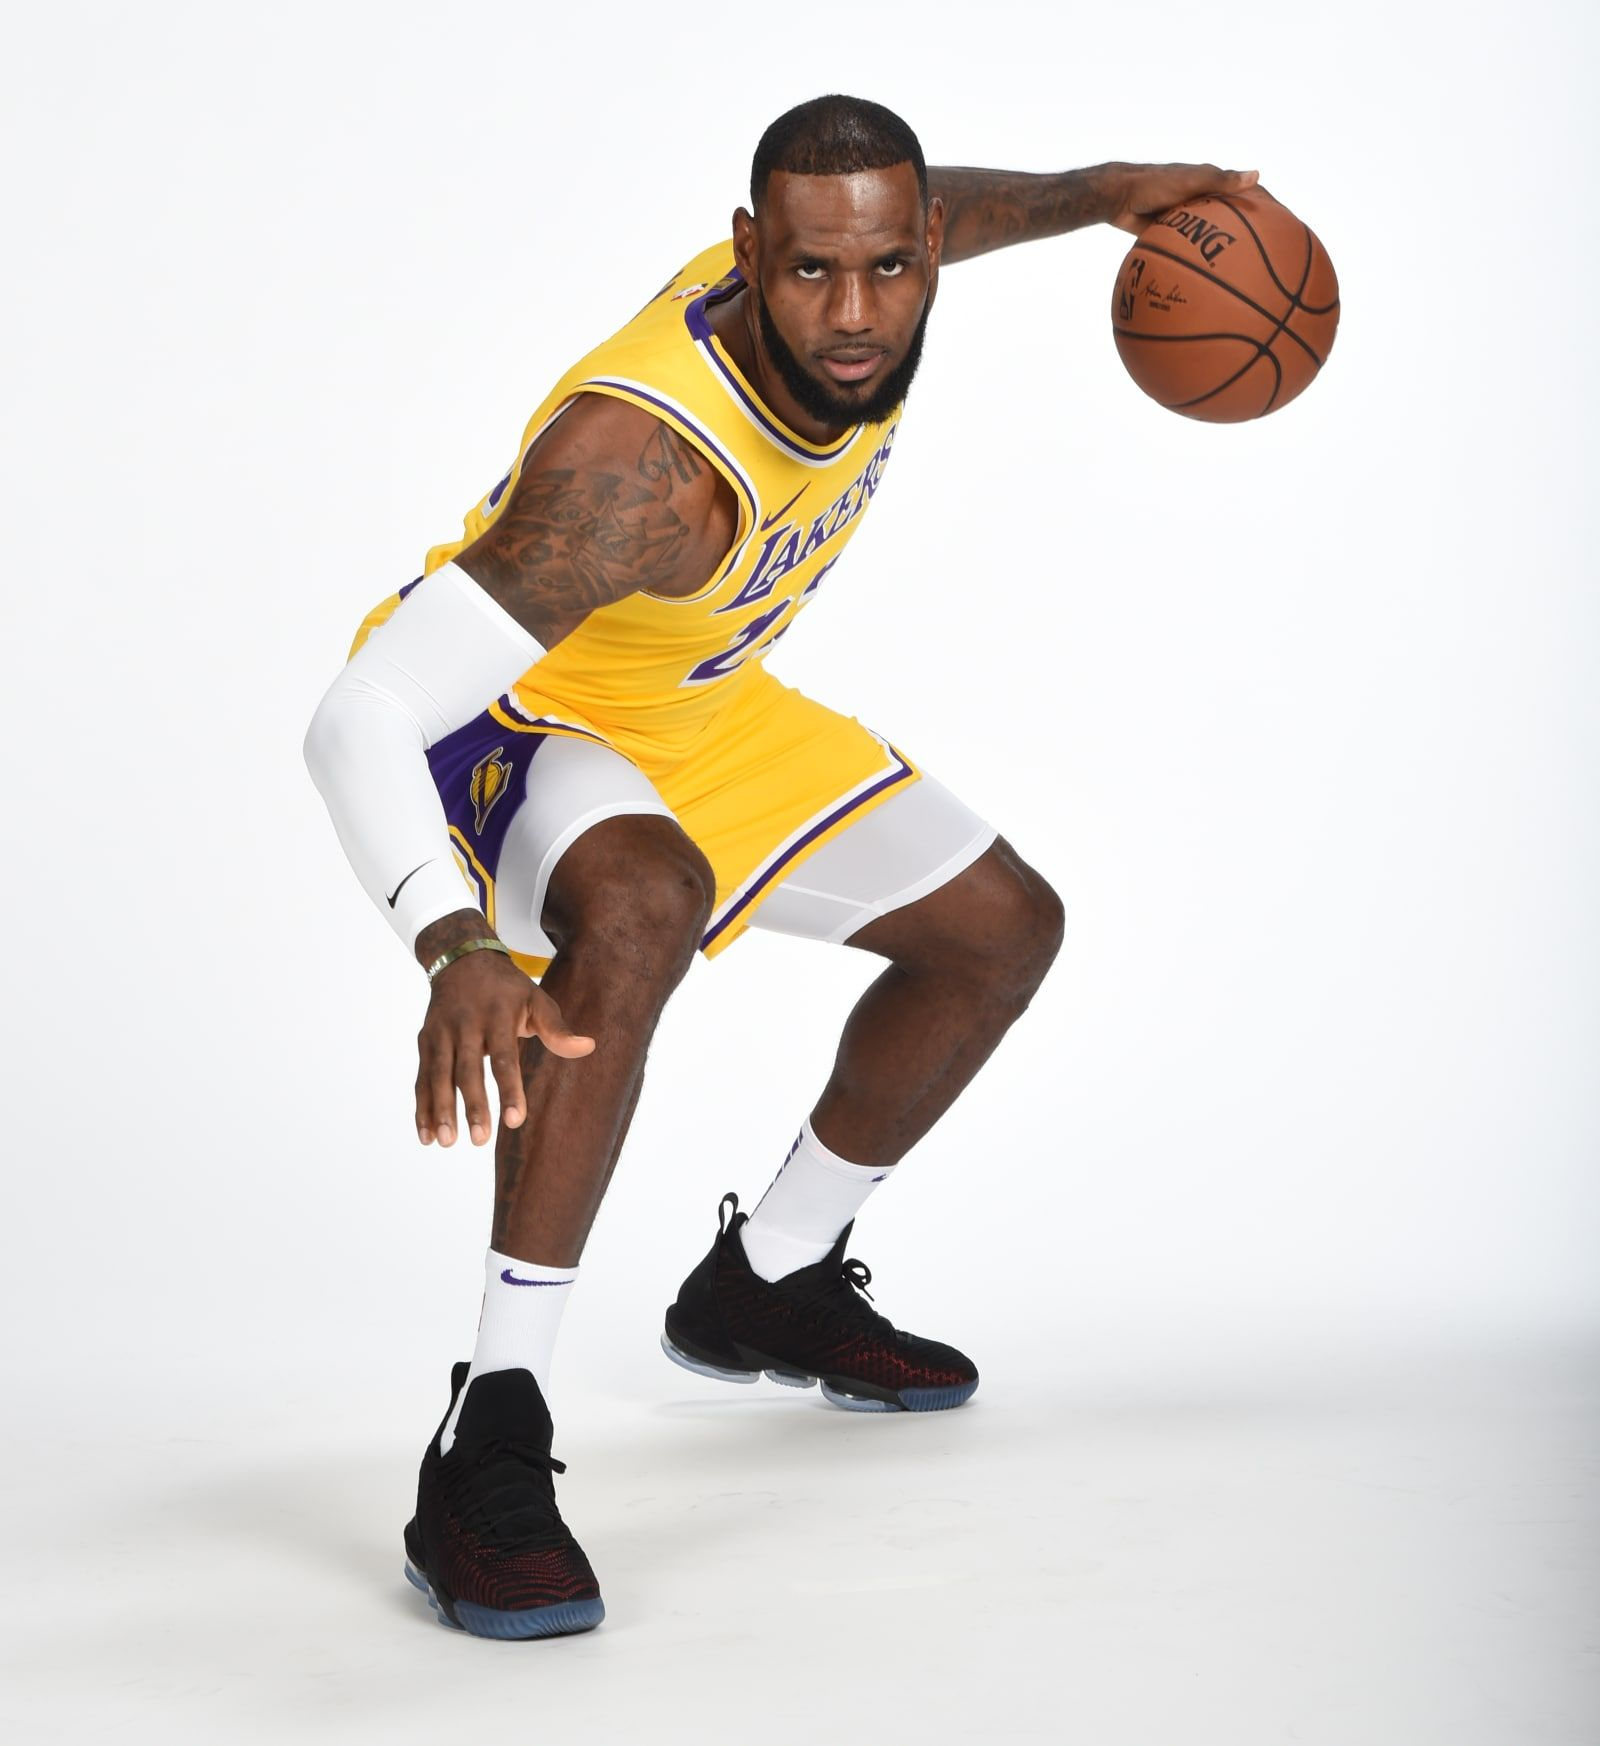 timeless design 63faf 5d550 LeBron James - Nike LeBron 16 - NBA Media Day 2018 Best Sneakers   Sole  Collector